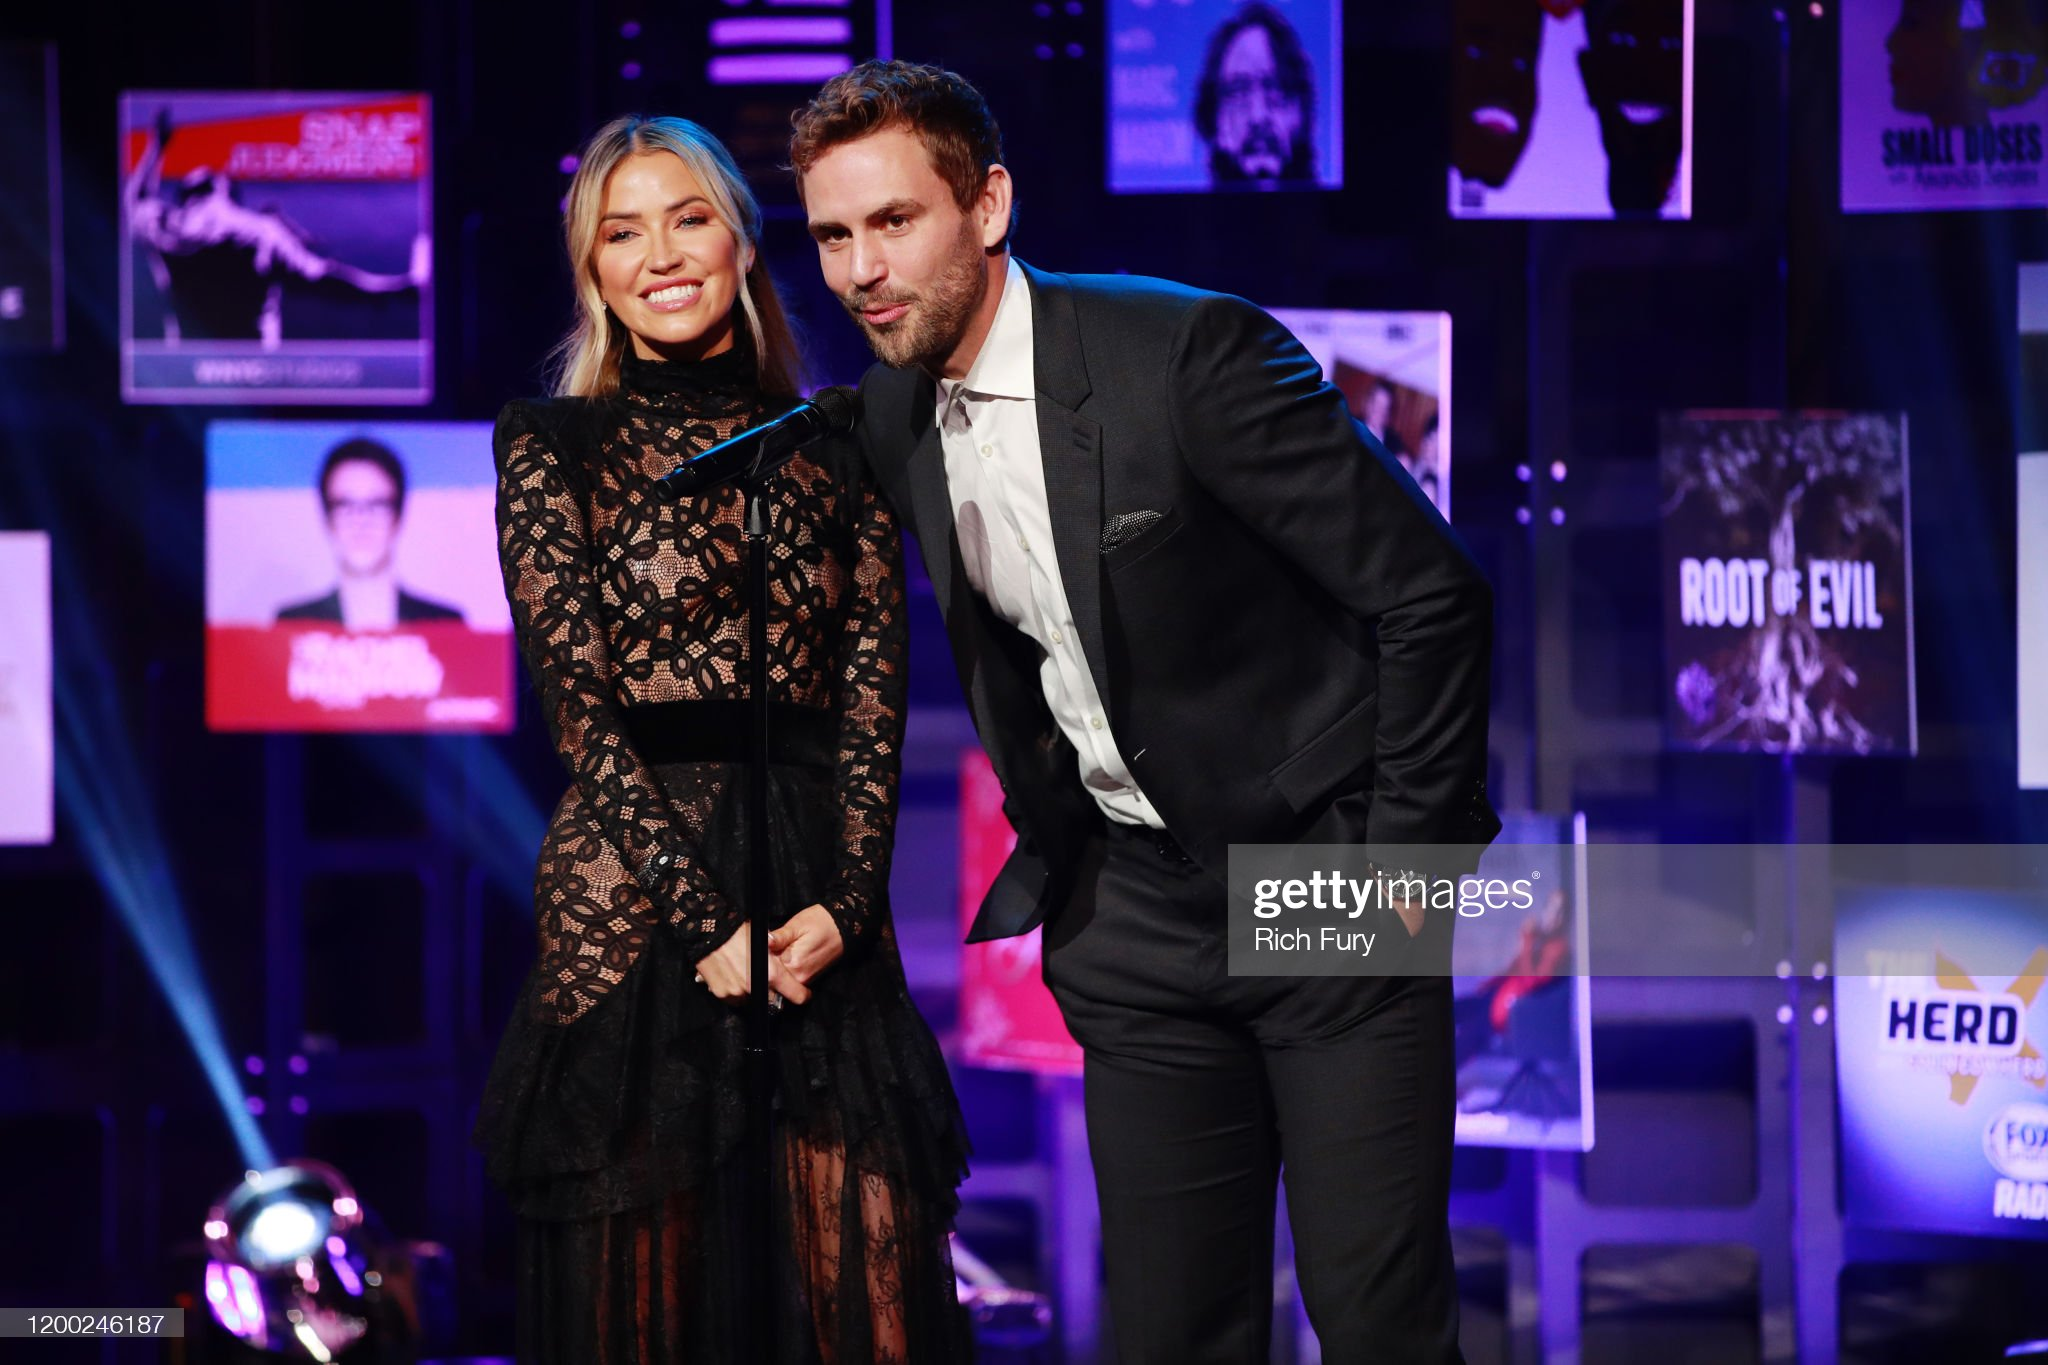 Kaitlyn Bristowe - Jason Tartick - FAN Forum - Discussion  - Page 51 Kaitlyn-bristowe-and-nick-viall-speak-onstage-at-the-2020-iheartradio-picture-id1200246187?s=2048x2048